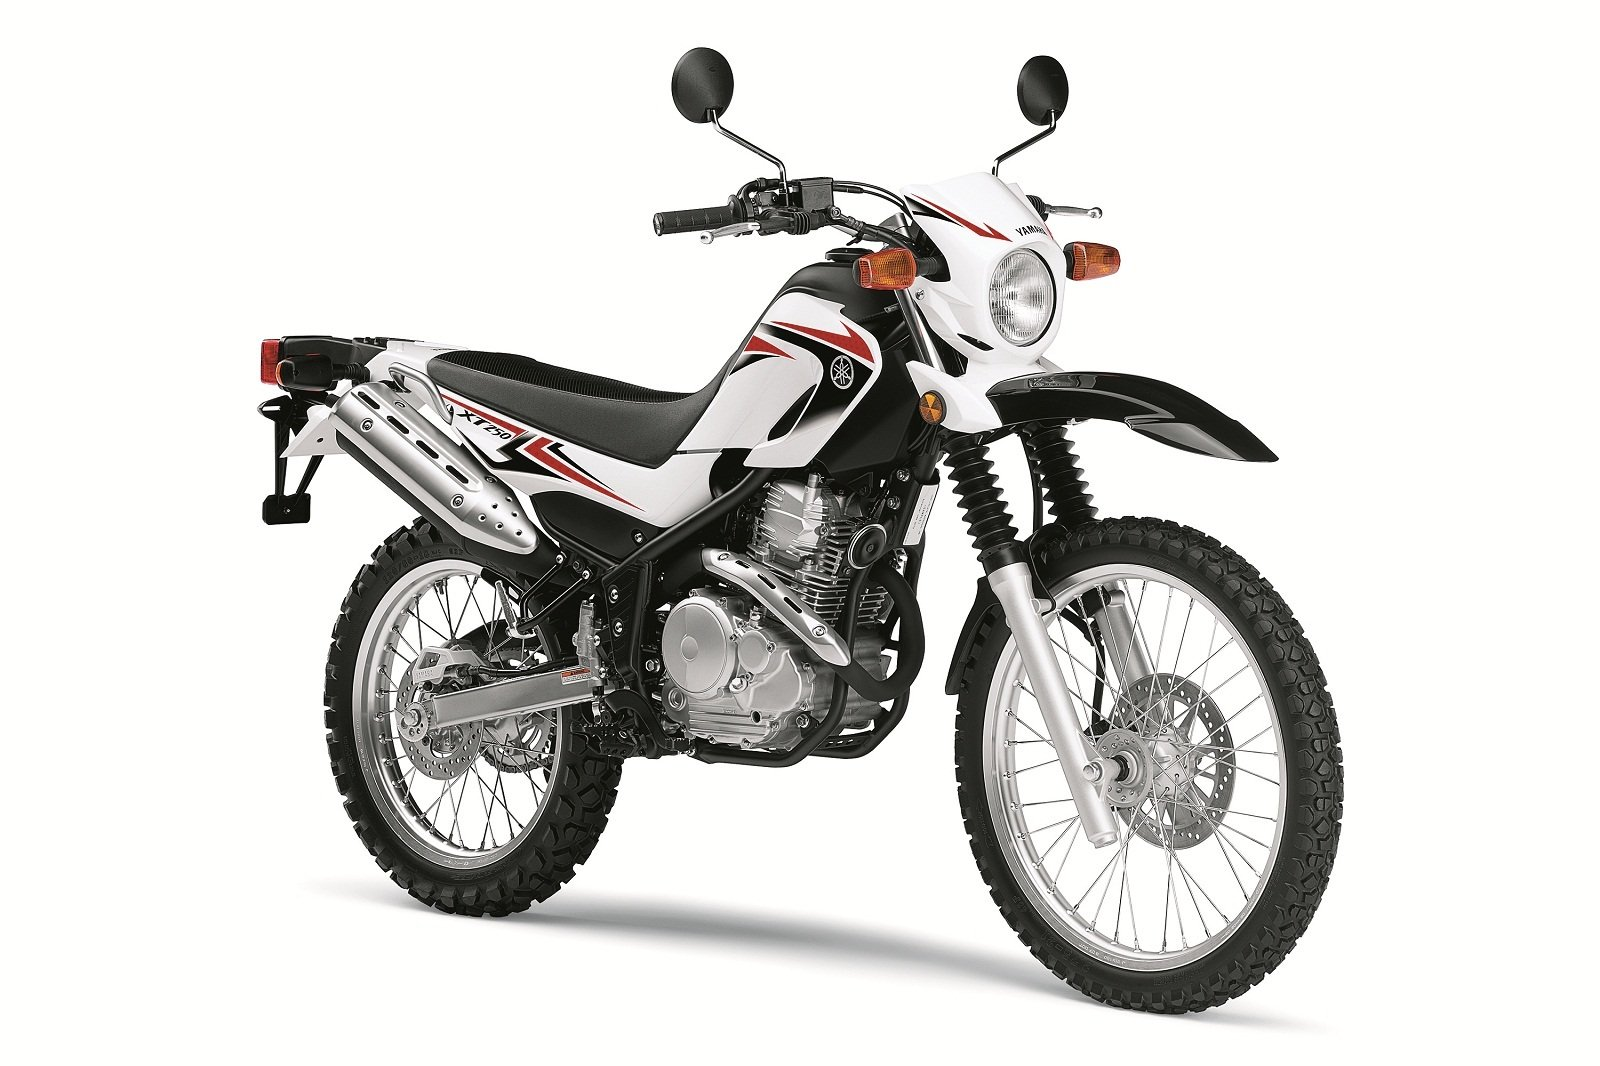 Yamaha Xt250 Pictures Photos Wallpapers